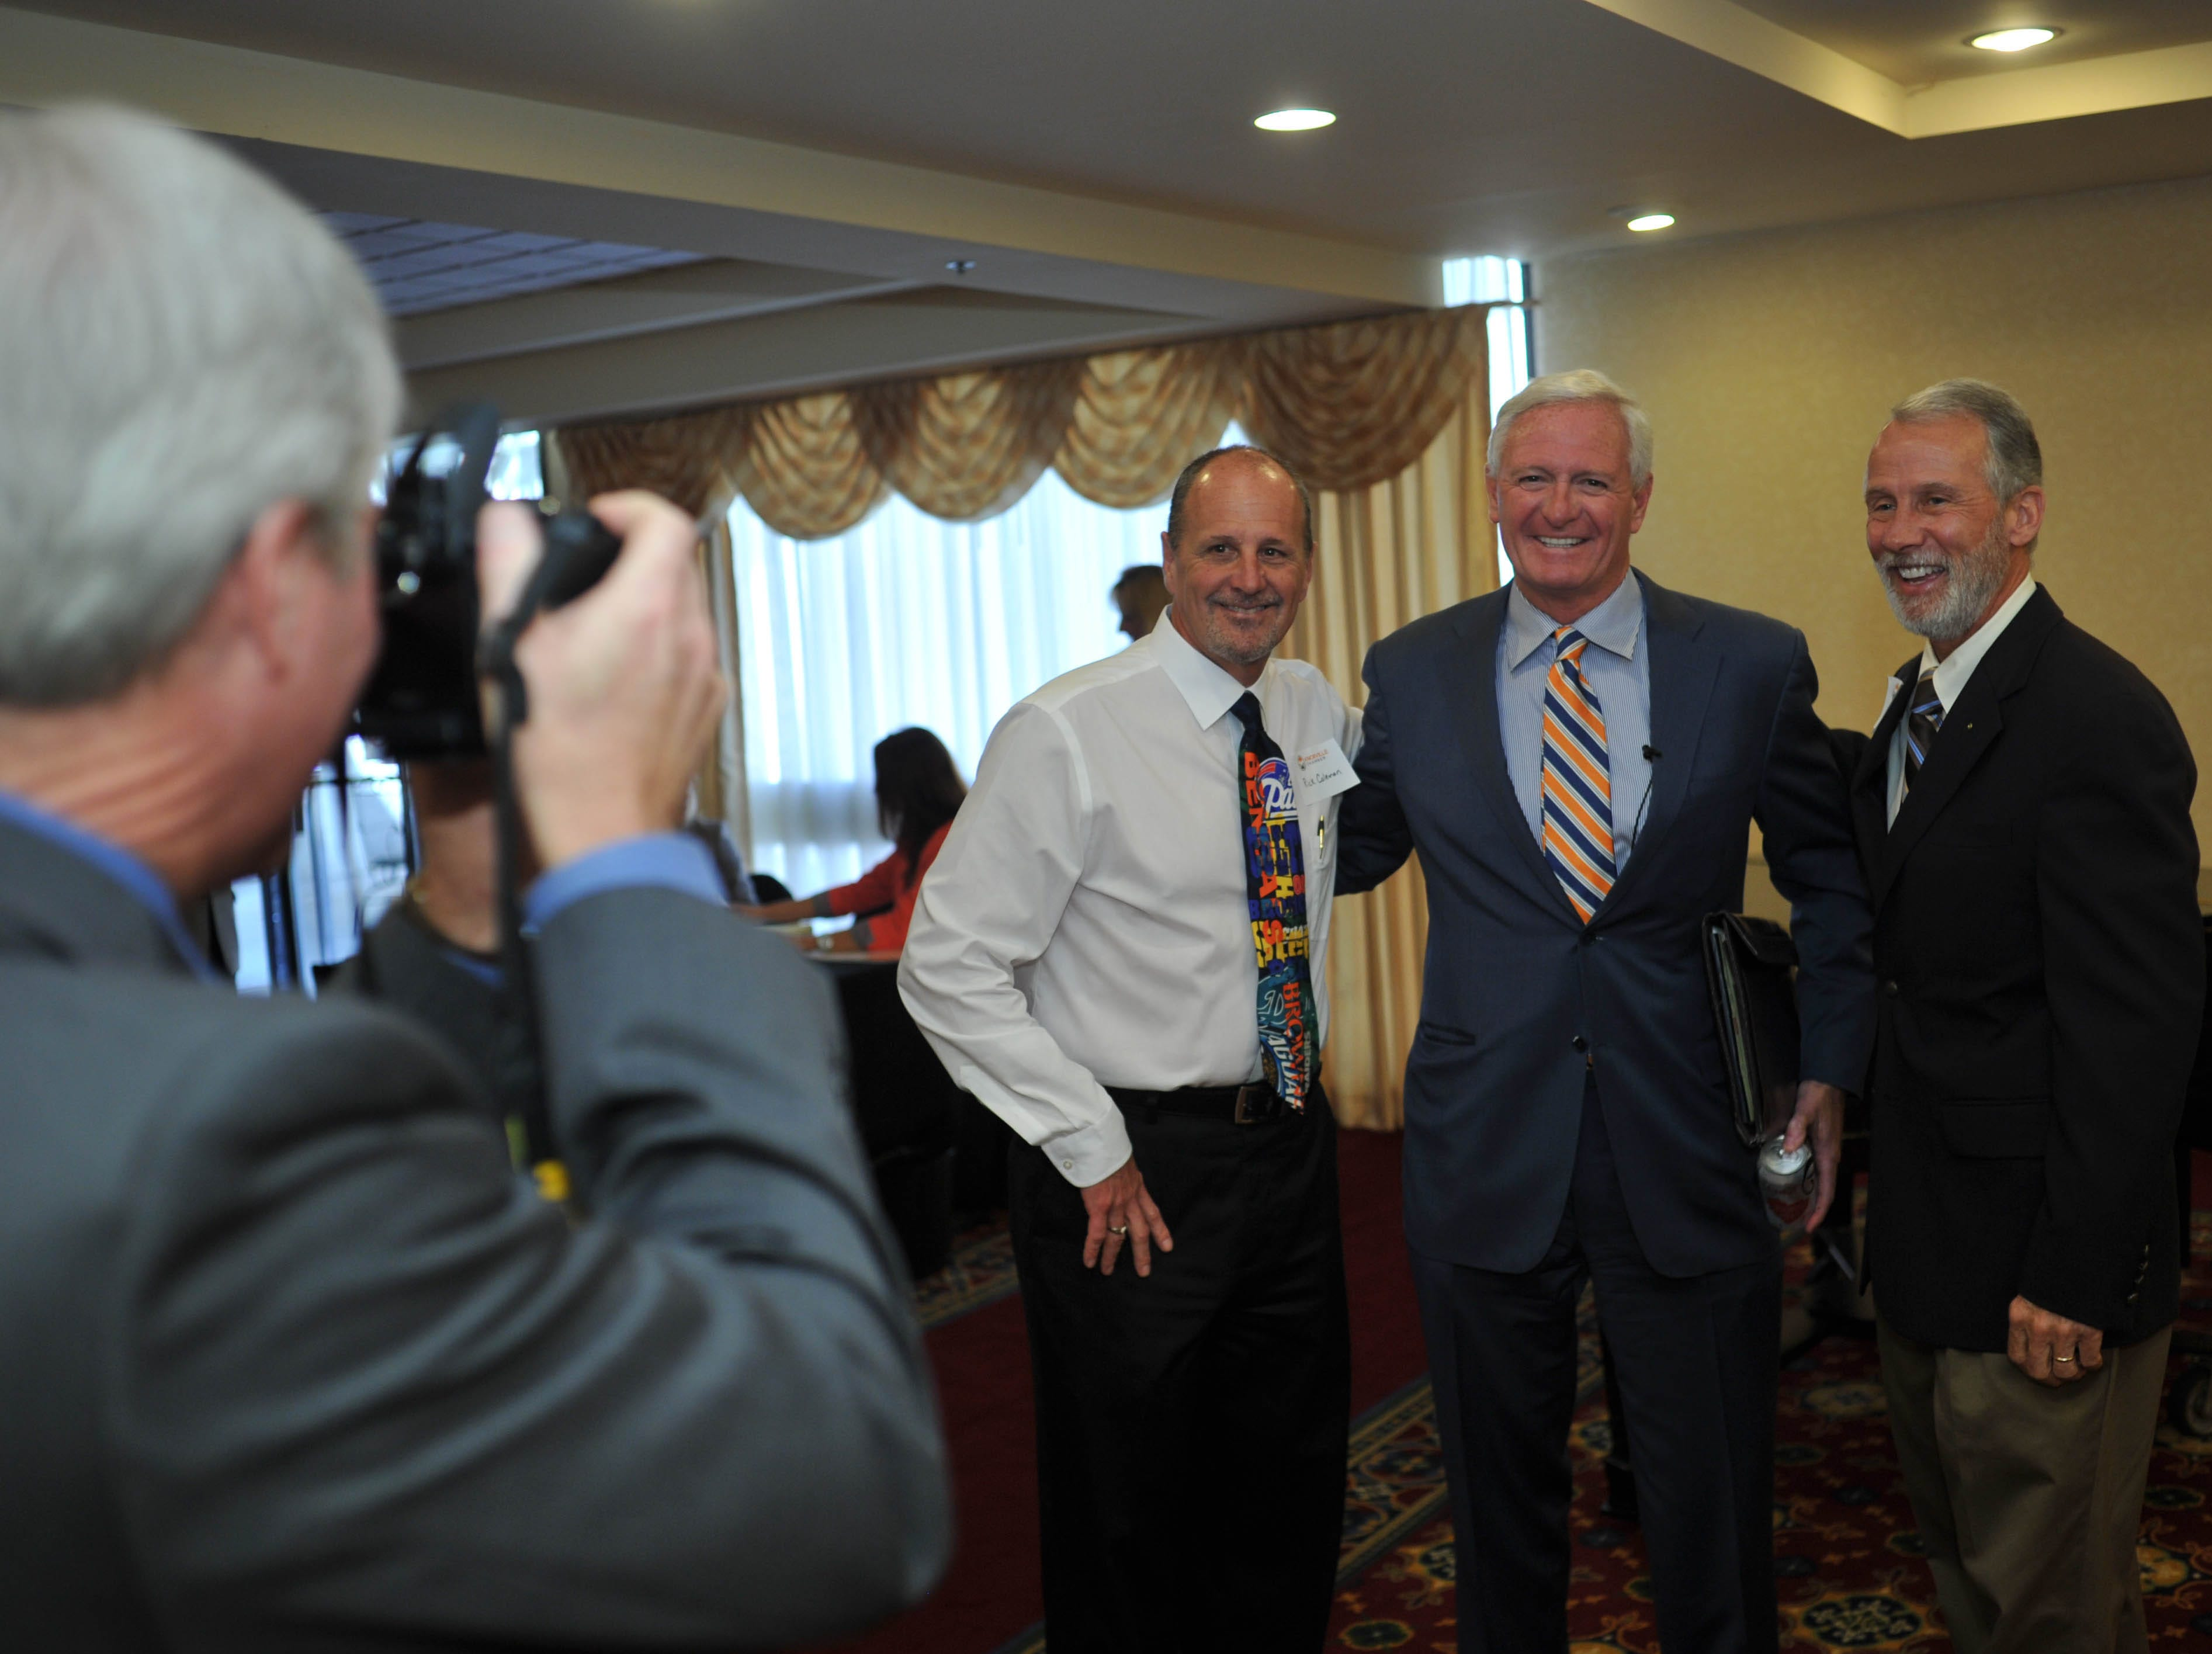 With YMCA of East Tennessee President Jim Dickson behind the lens, Pilot Flying J President and Cleveland Browns owner Jimmy Haslam, center, is photographed with YMCA CFO Rick Coleman, left, and Denark Construction Co. President Frank Rothermel before a Knoxville Chamber execUTive Speaker Series presentation Wednesday, April 10, 2013, at the Marriott.